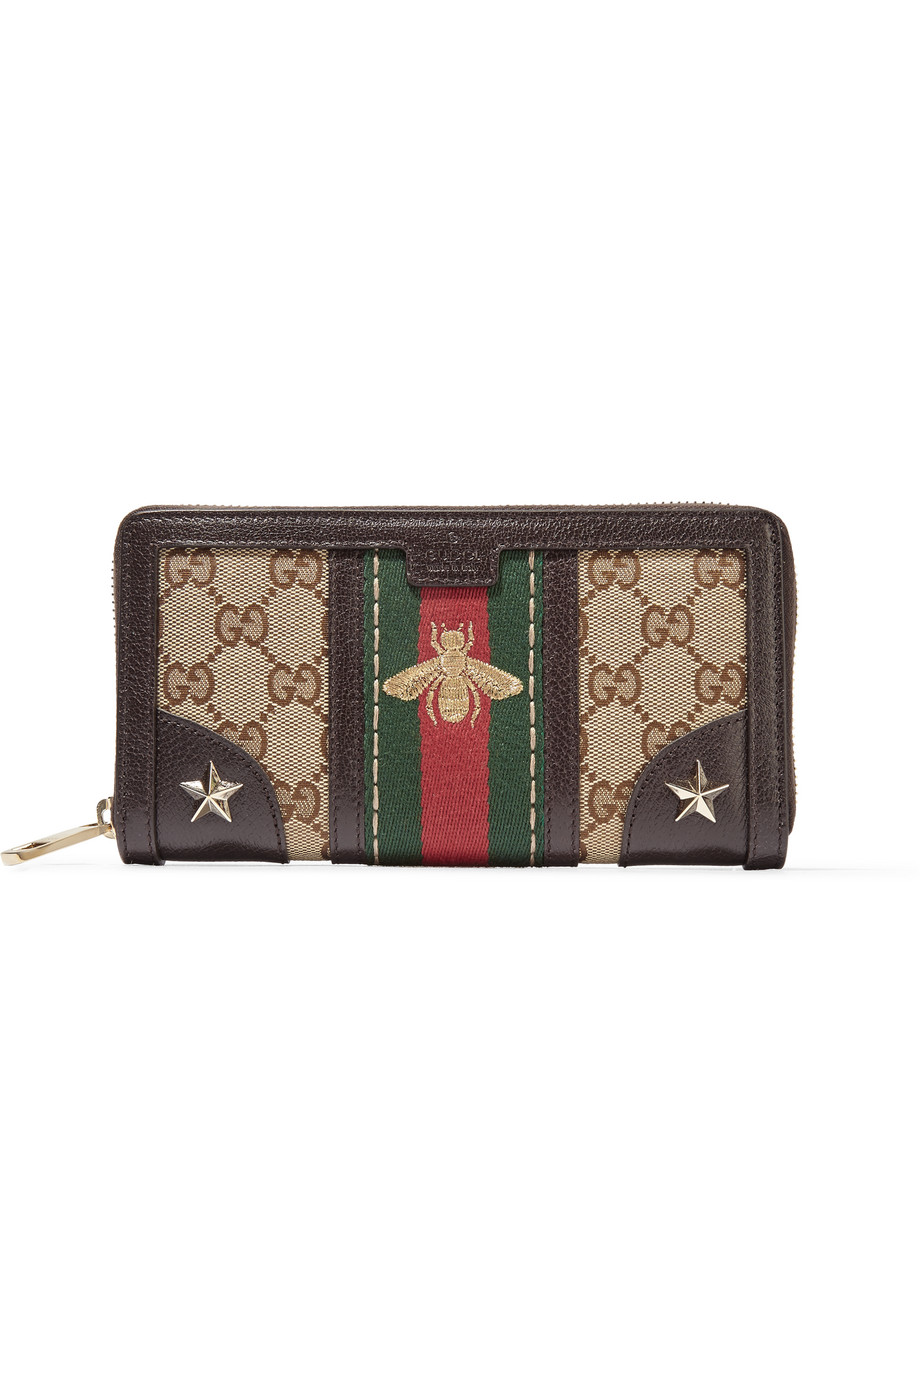 Gucci Leather-Trimmed Canvas Wallet, Beige, Women's